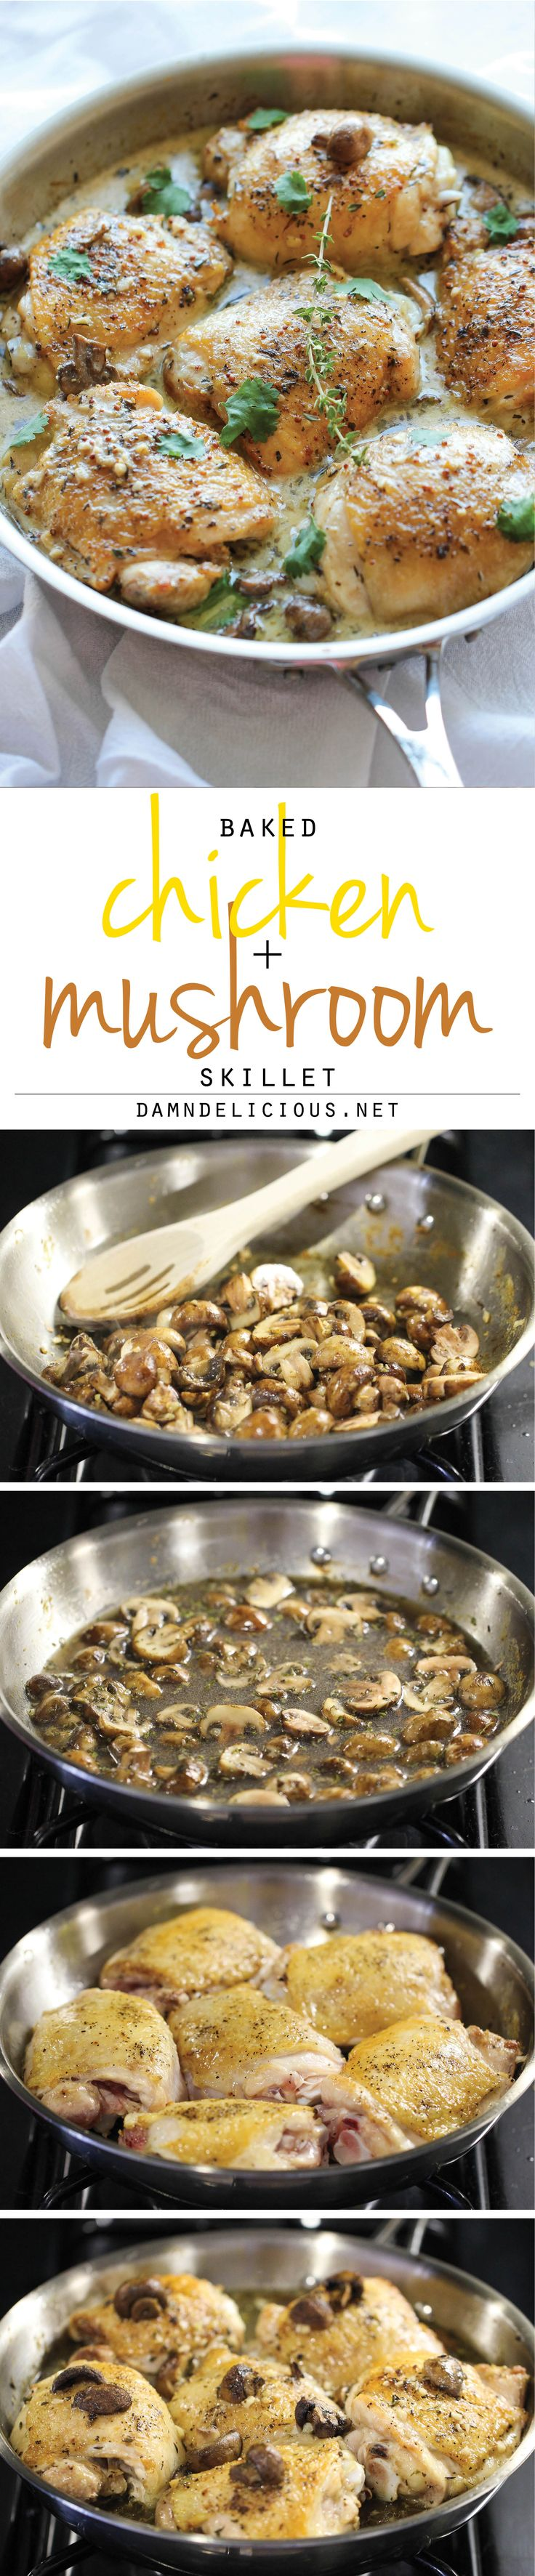 #gluten_free #gf #dinner_recipe | Baked Chicken and Mushroom Skillet - The most flavorful chicken topped with the creamiest mushroom sauce. An easy meal for those busy weeknights! chicken recipes